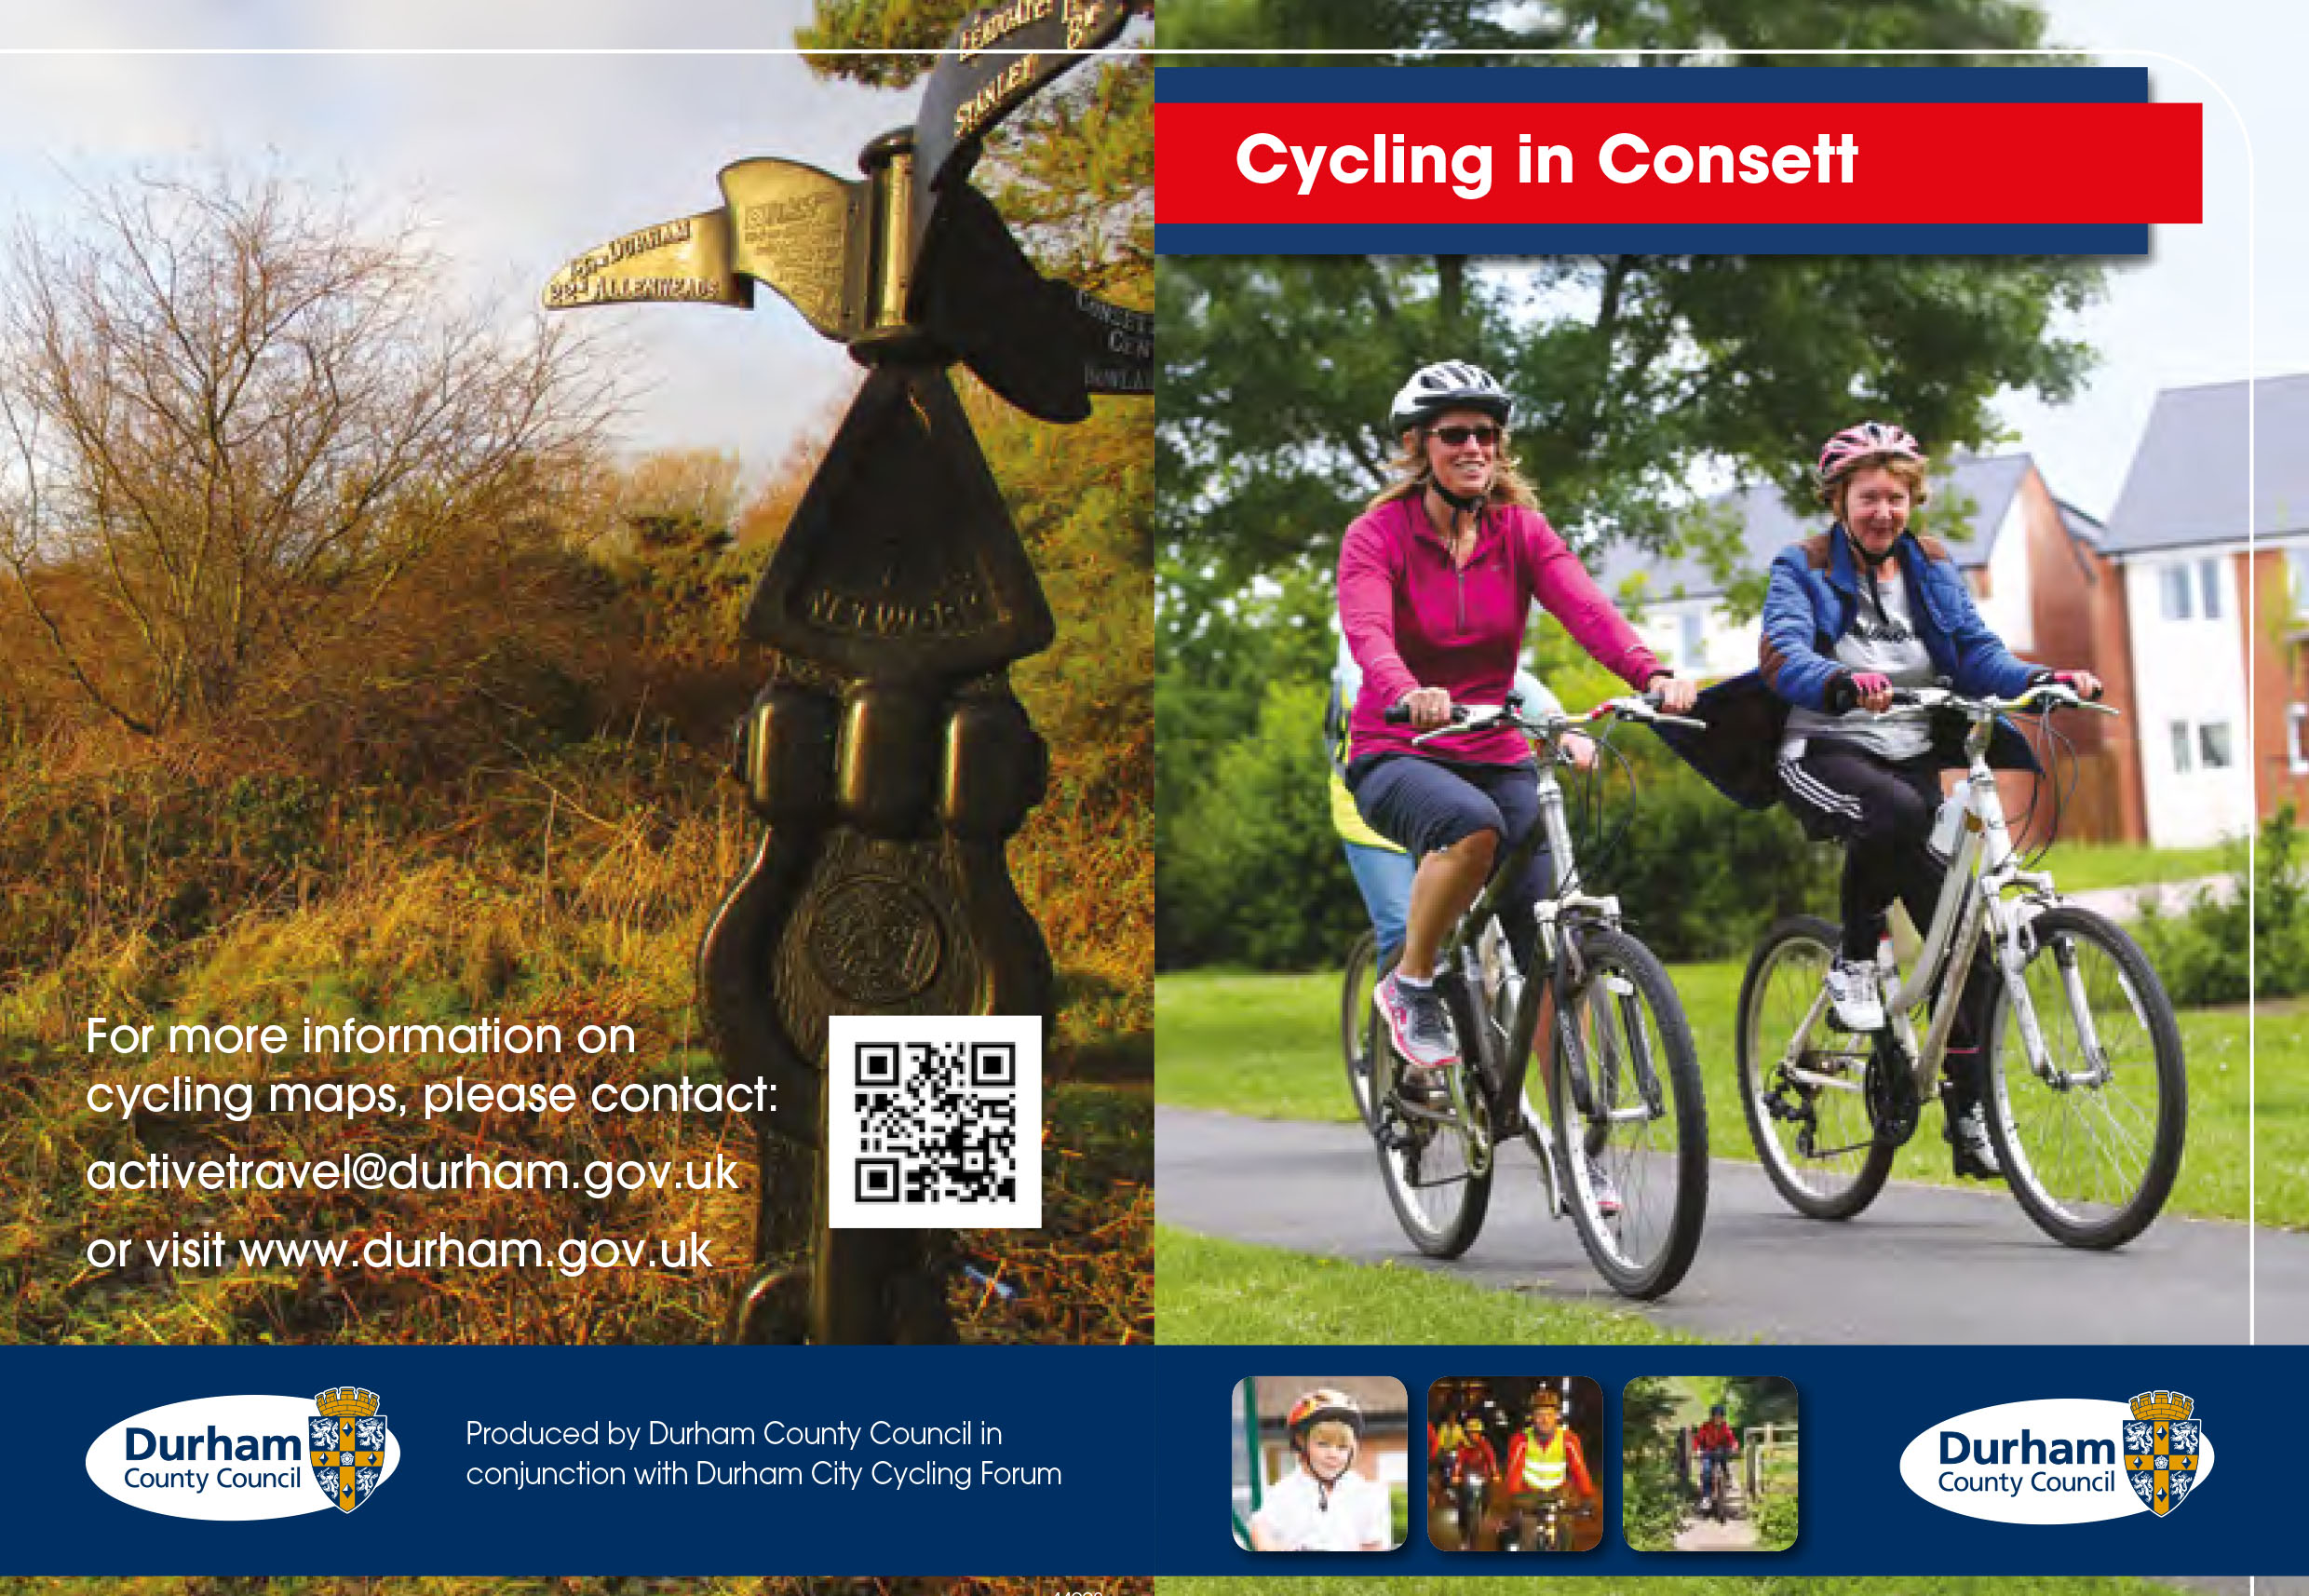 Cycling In Consett front page of PDF creating link to website